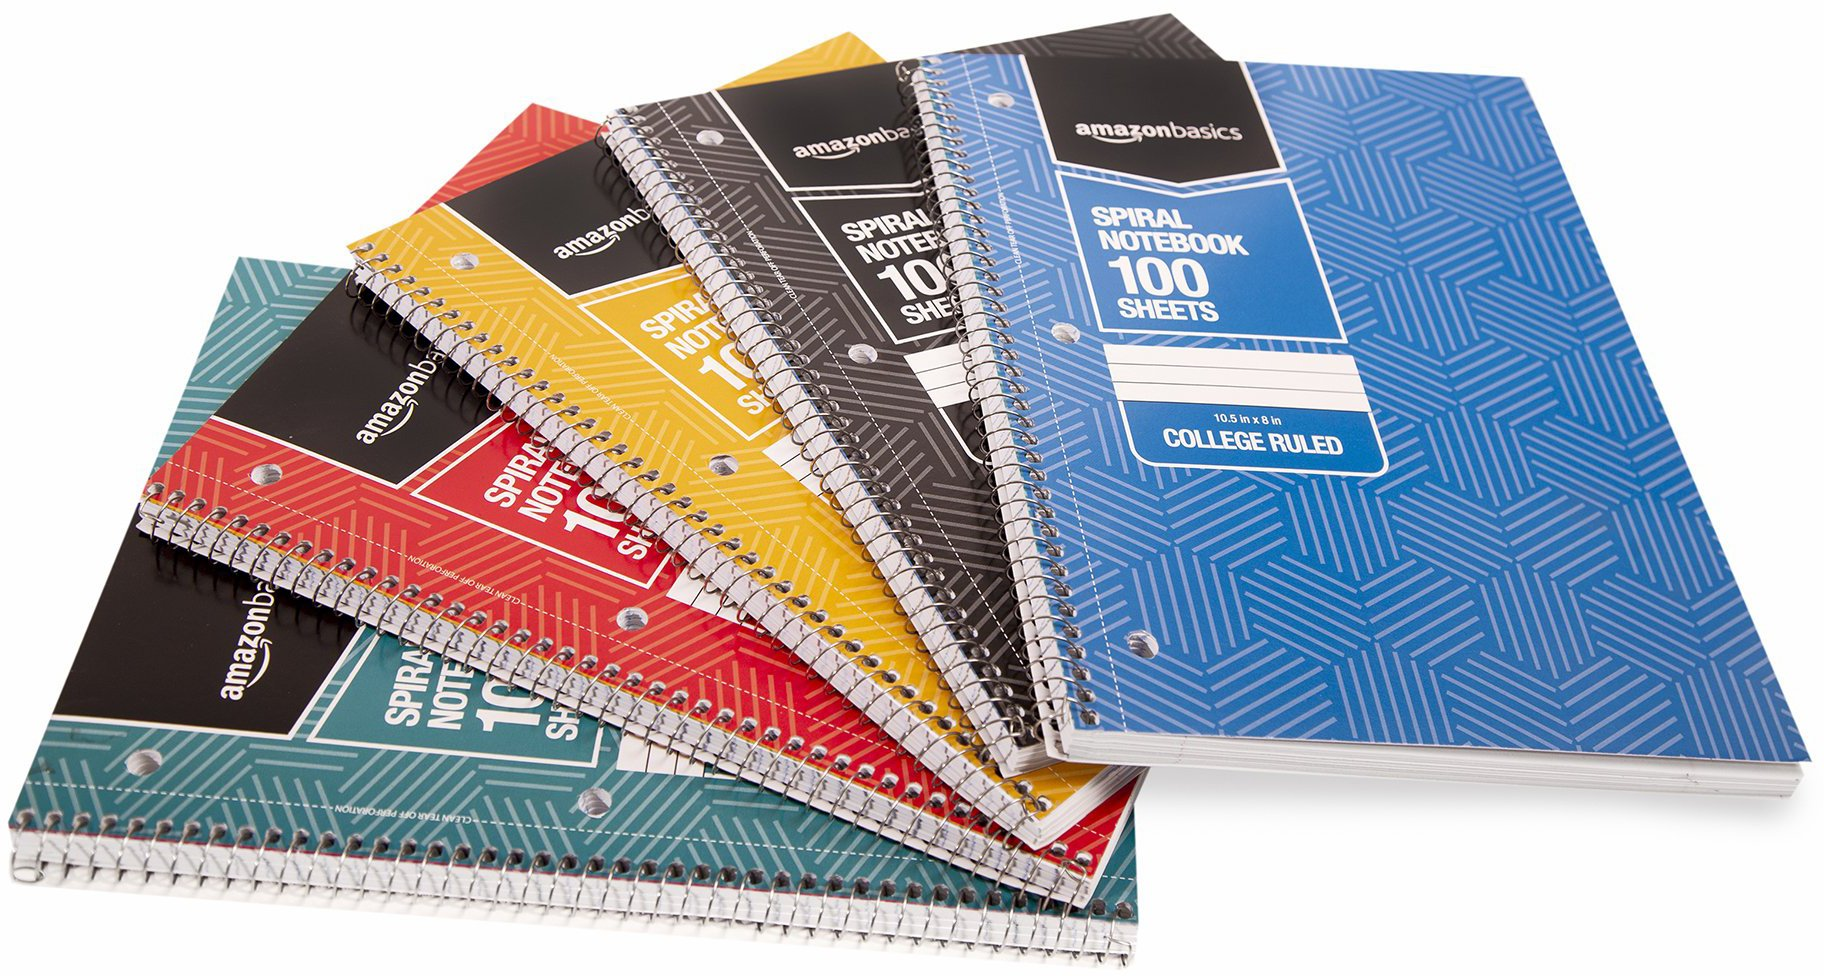 """Amazon Basics College Ruled Wirebound Spiral Notebook, 100 Sheet, Assorted Sunburst Pattern Colors, 5-Pack                Five Star Spiral Notebooks, 1 Subject, College Ruled Paper, 100 Sheets, 11"""" x 8-1/2"""", Teal, Lime, Gray, 3 Pack (73053)                Moleskine Classic Notebook, Hard Cover, Large (5"""" x 8.25"""") Ruled/Lined, Black, 240 Pages                Amazon Basics Classic Lined Notebook, 240 Pages, Hardcover - Ruled                Pocket Notebook Small Notebook 2-Pack, 3.5"""" x 5.5"""" pocket notebook hardcover Total 400 Pages Thick Lined Paper with Inner Pockets Leather Mini Journal Notepad"""